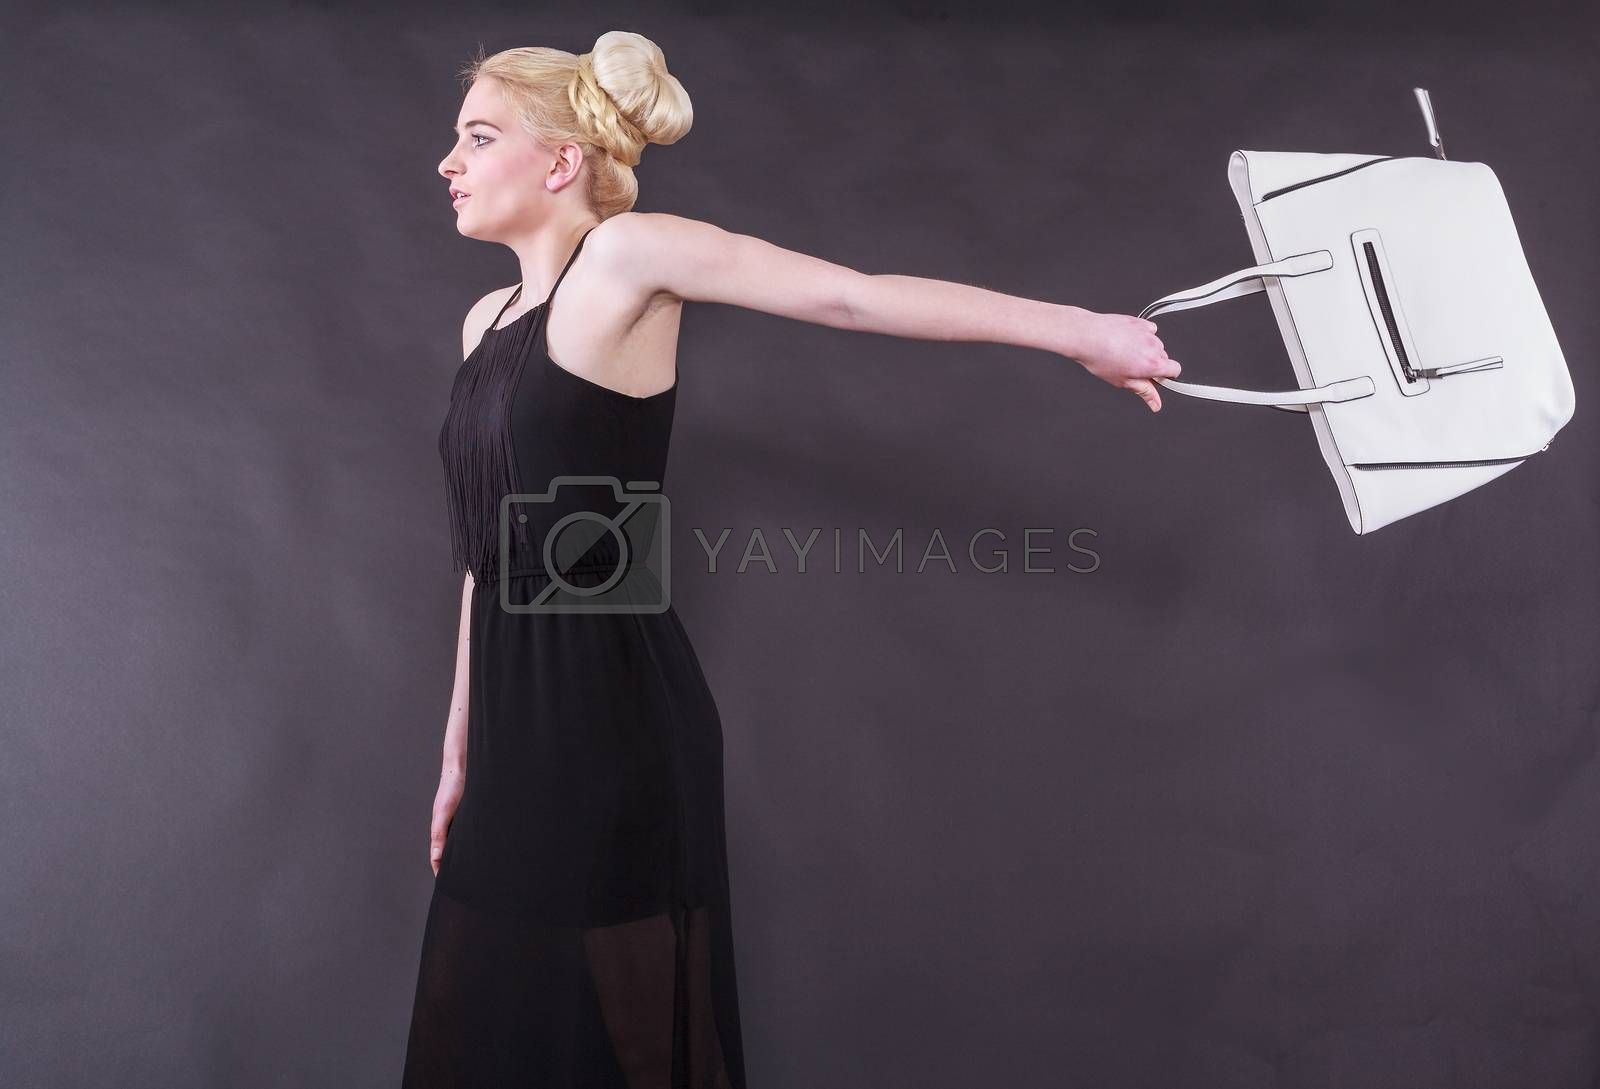 Lively young blond woman in a black dress with a white handbag on an outstretched arm back before black background, studio shot.